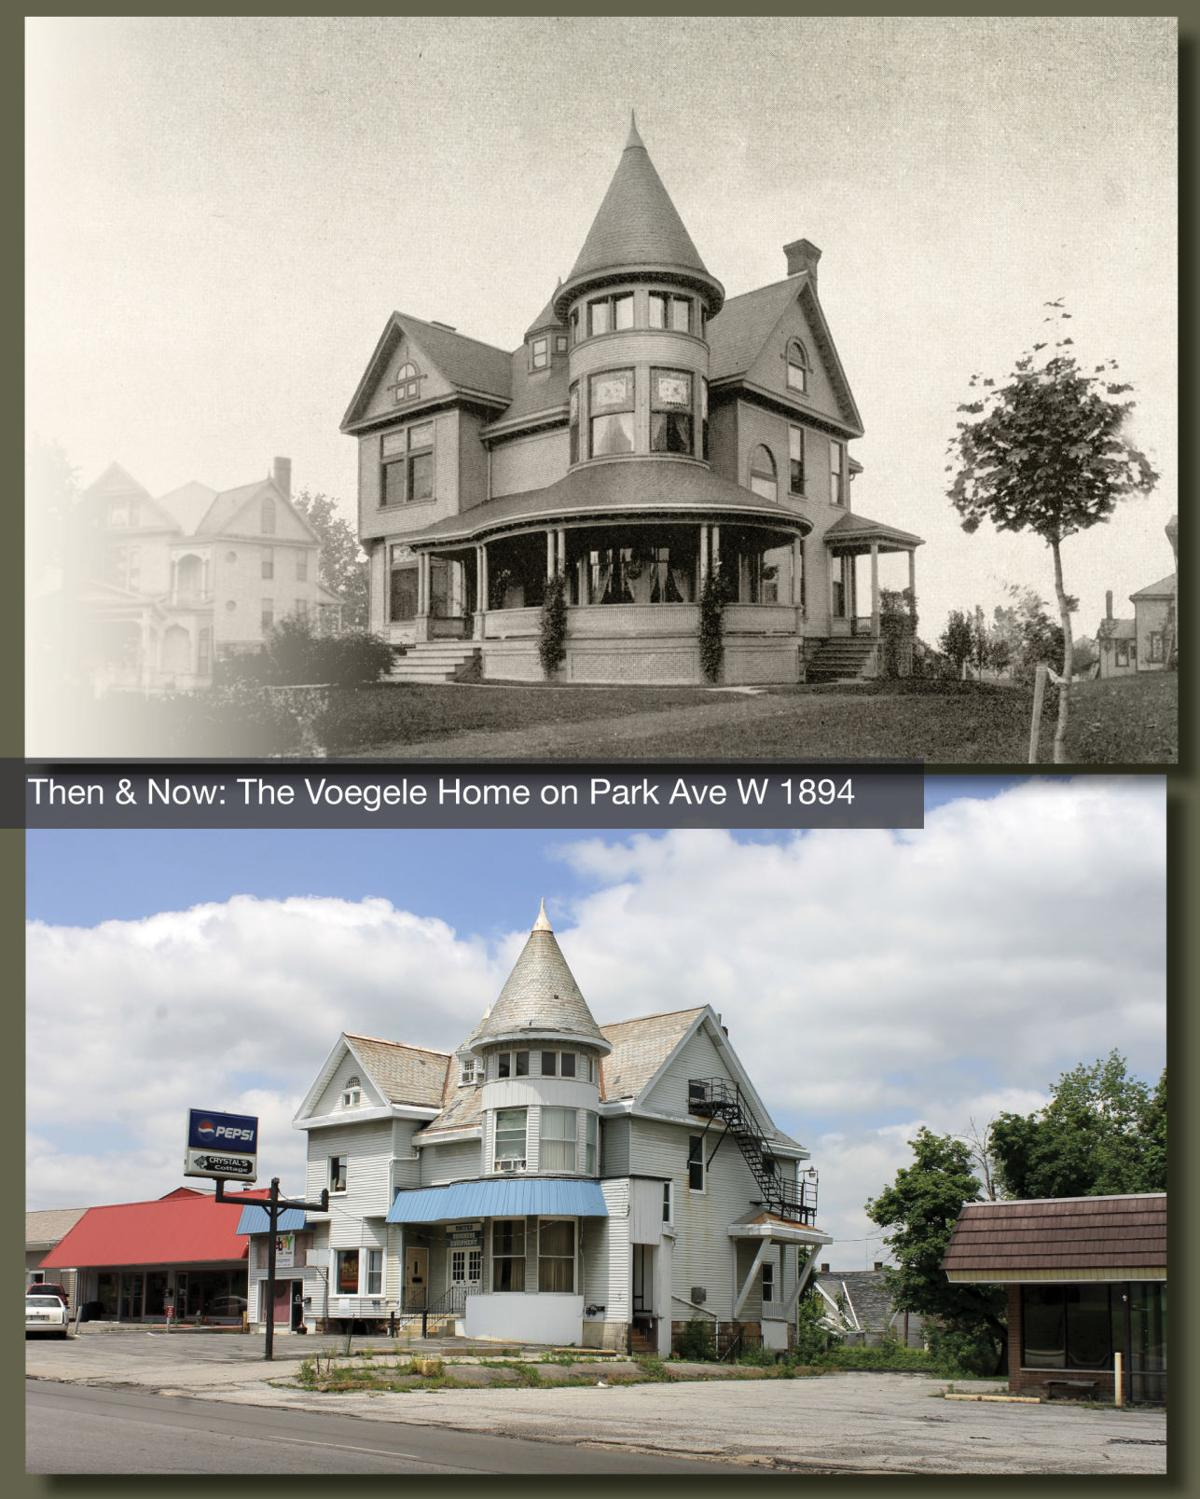 Then & Now: The Voegele Home